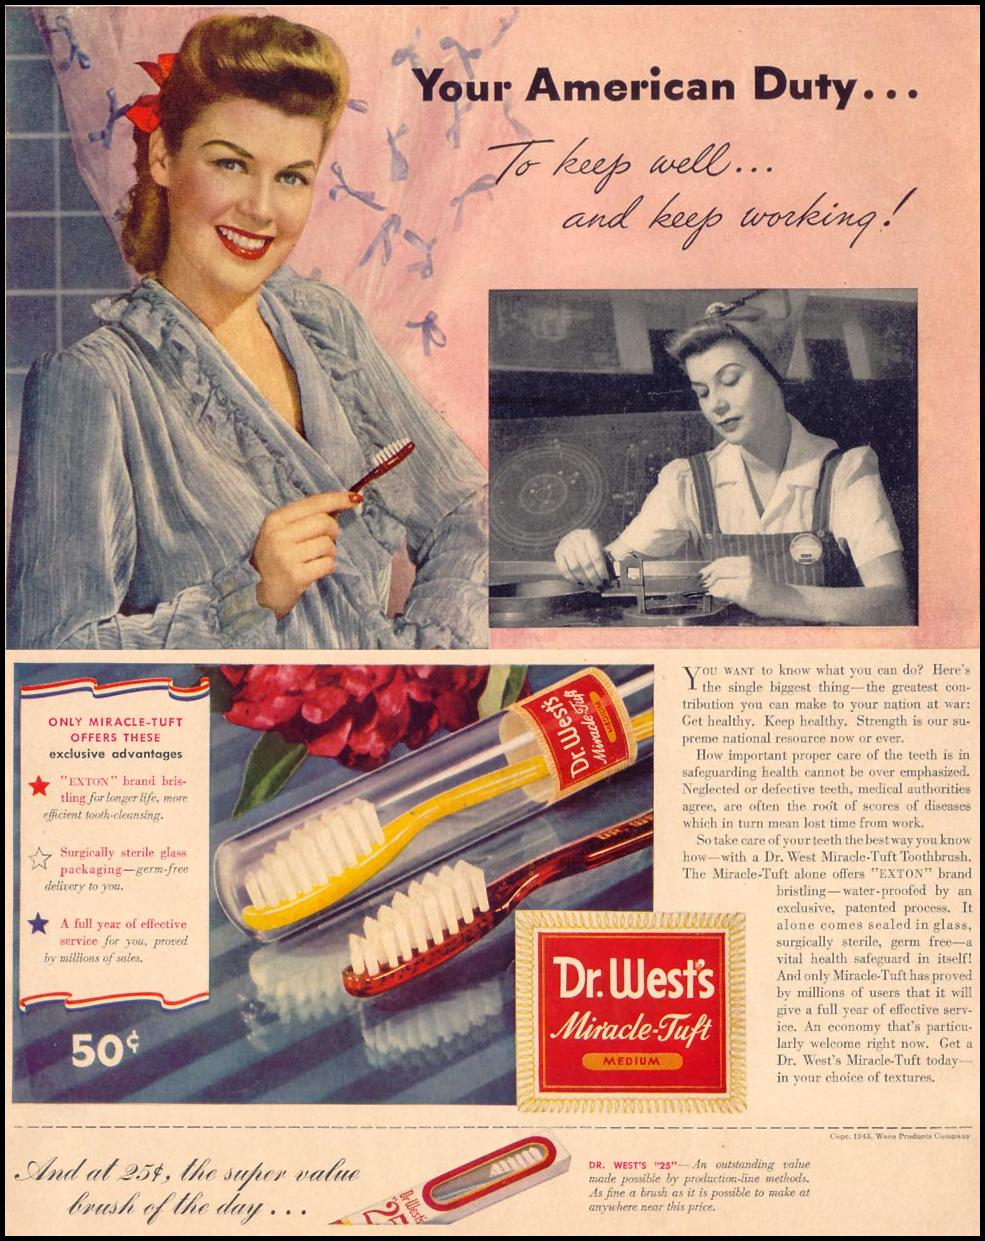 DR. WEST'S MIRACLE-TUFT TOOTHBRUSH LIFE 05/24/1943